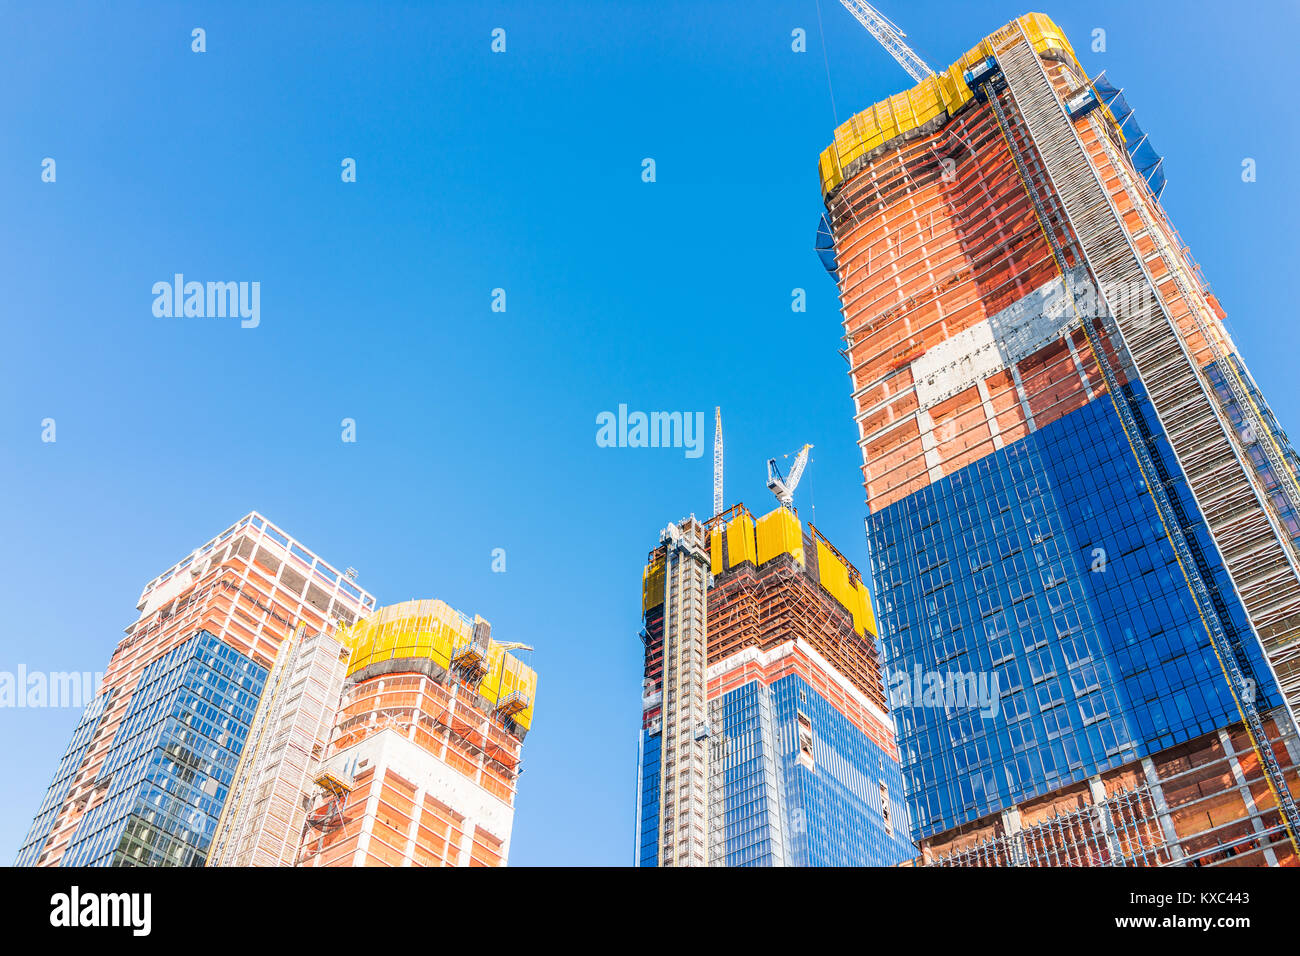 New York City, USA - October 27, 2017: Construction development at the Hudson Yards in Manhattan, NYC, on Chelsea Stock Photo